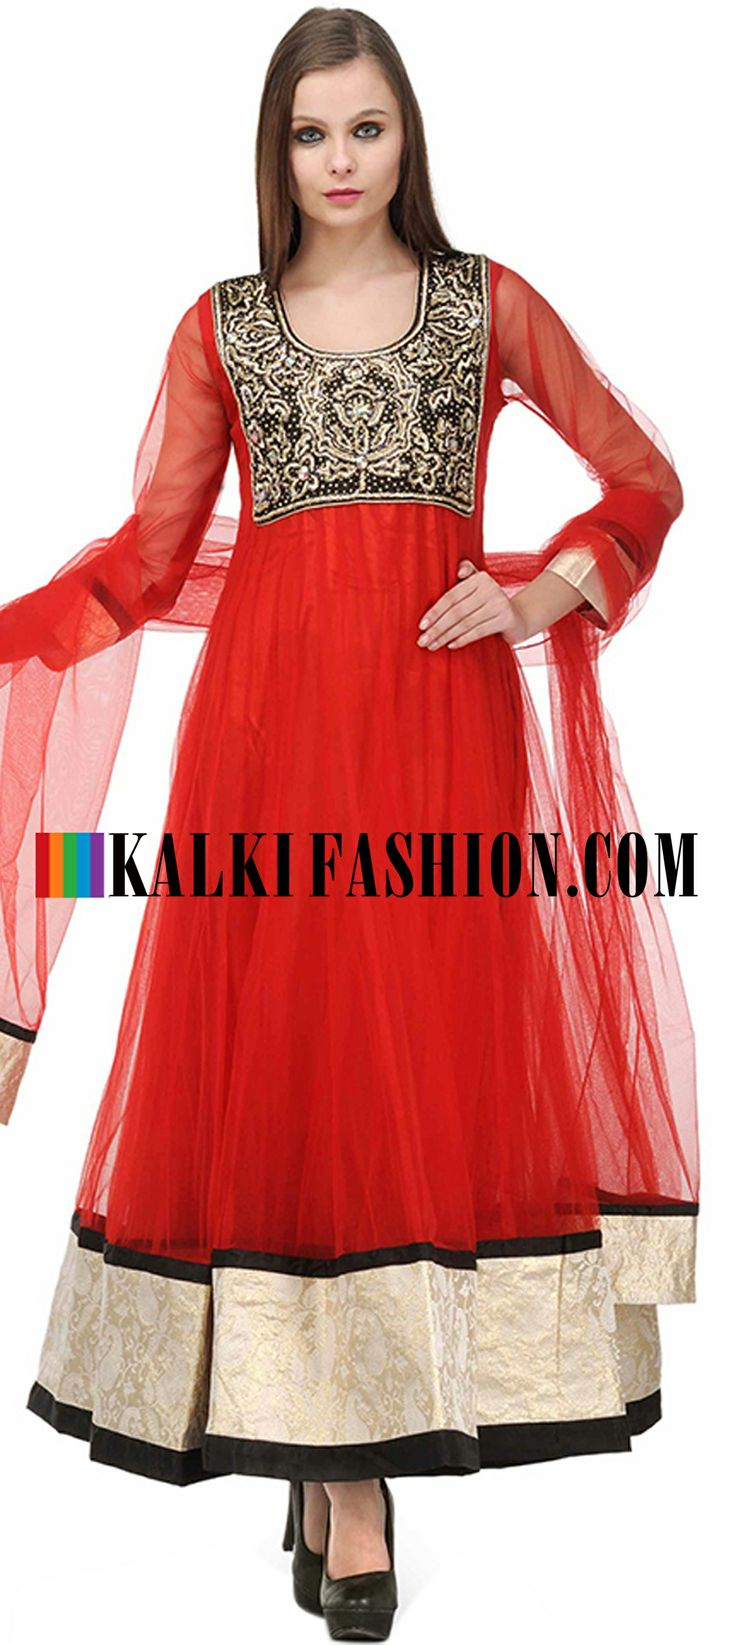 Buy Online from the link below. We ship worldwide (Free Shipping over US$100)  http://www.kalkifashion.com/red-embellished-anarkali-suit-set.html